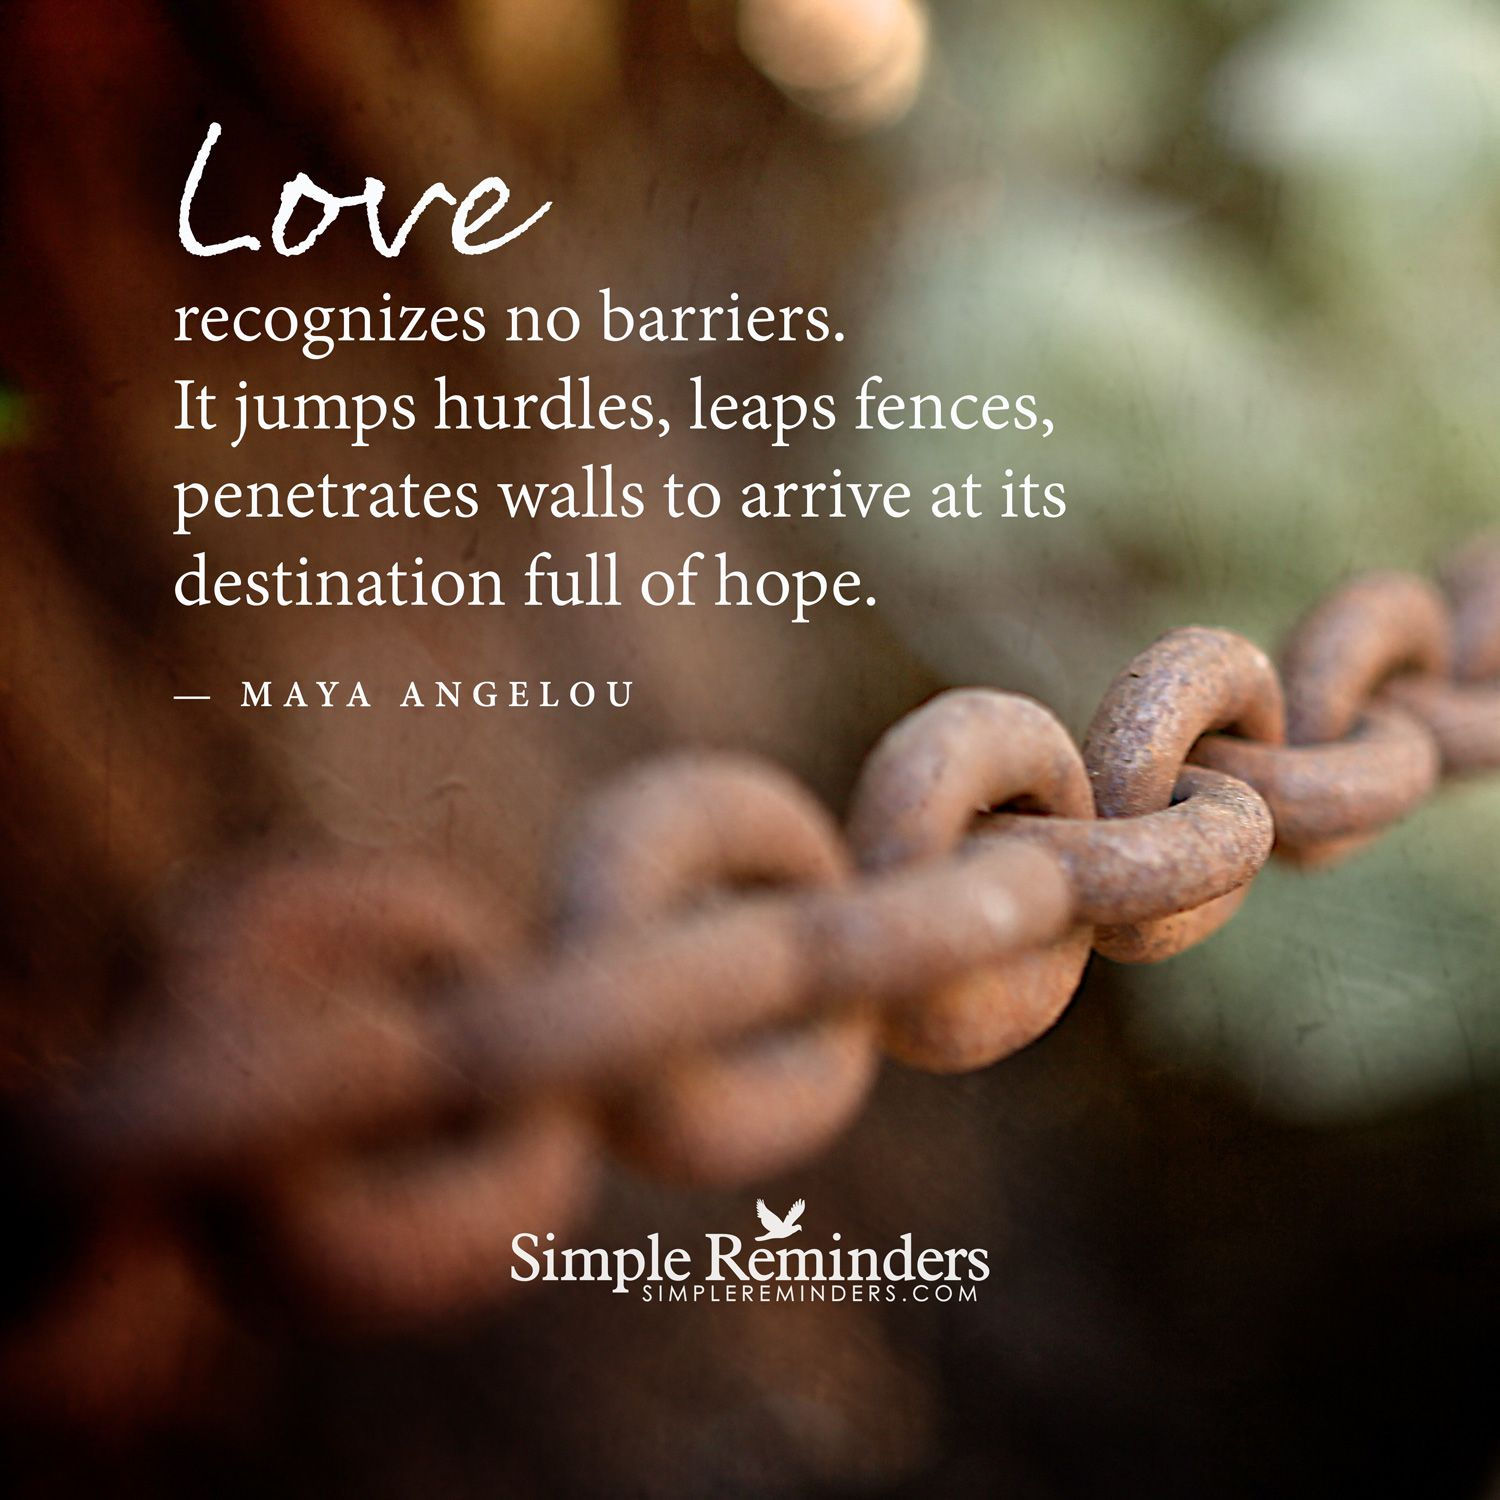 Maya Angelou Quotes And Sayings: Love Recognizes No Barriers. It Jumps Hurdles, Leaps